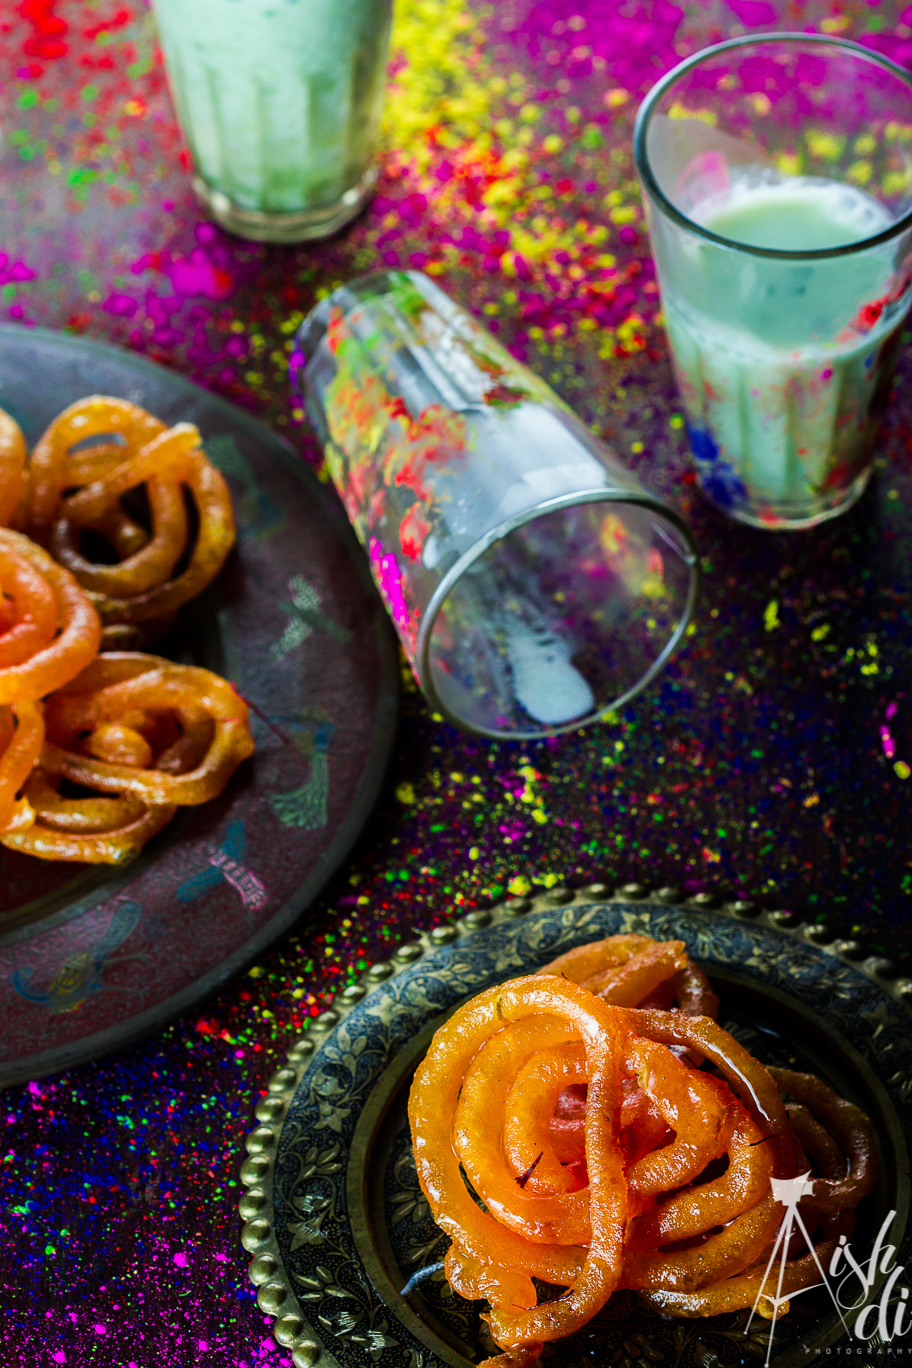 holi festival themed photography food beverage drinks photographer